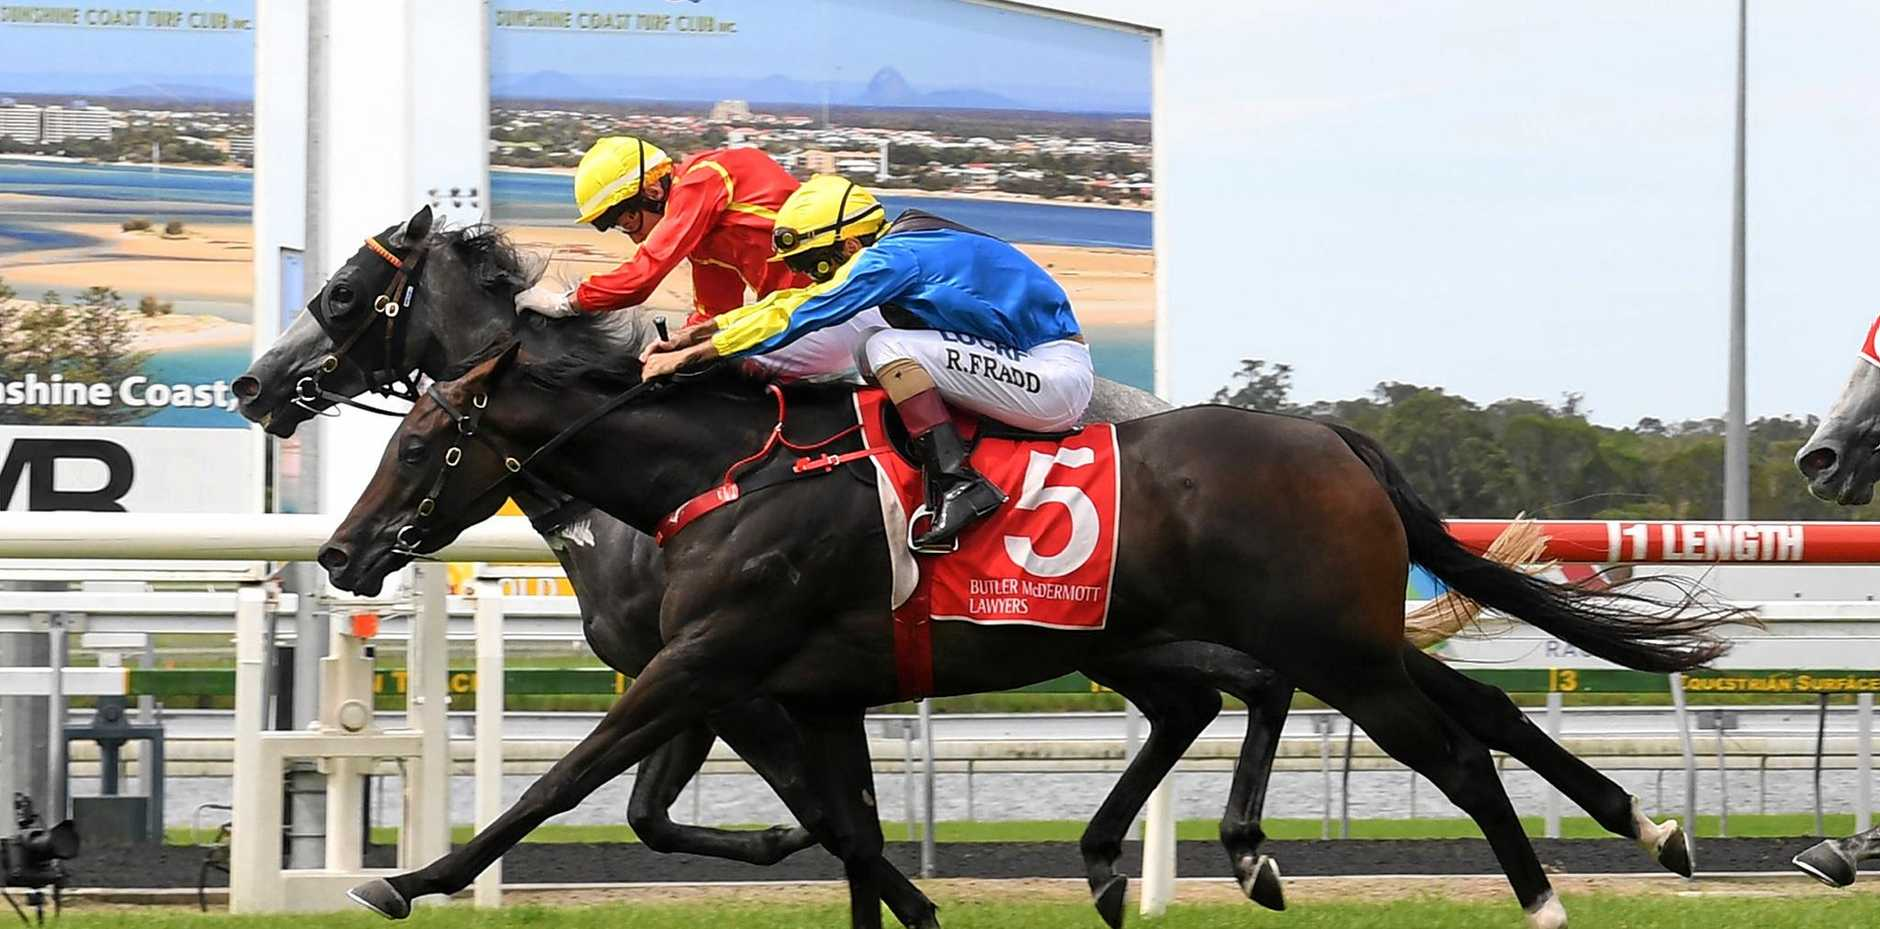 JUST: Jeff Lloyd steers Sweet Shamrock to a narrow victory in the first at Corbould Park on Wednesday.